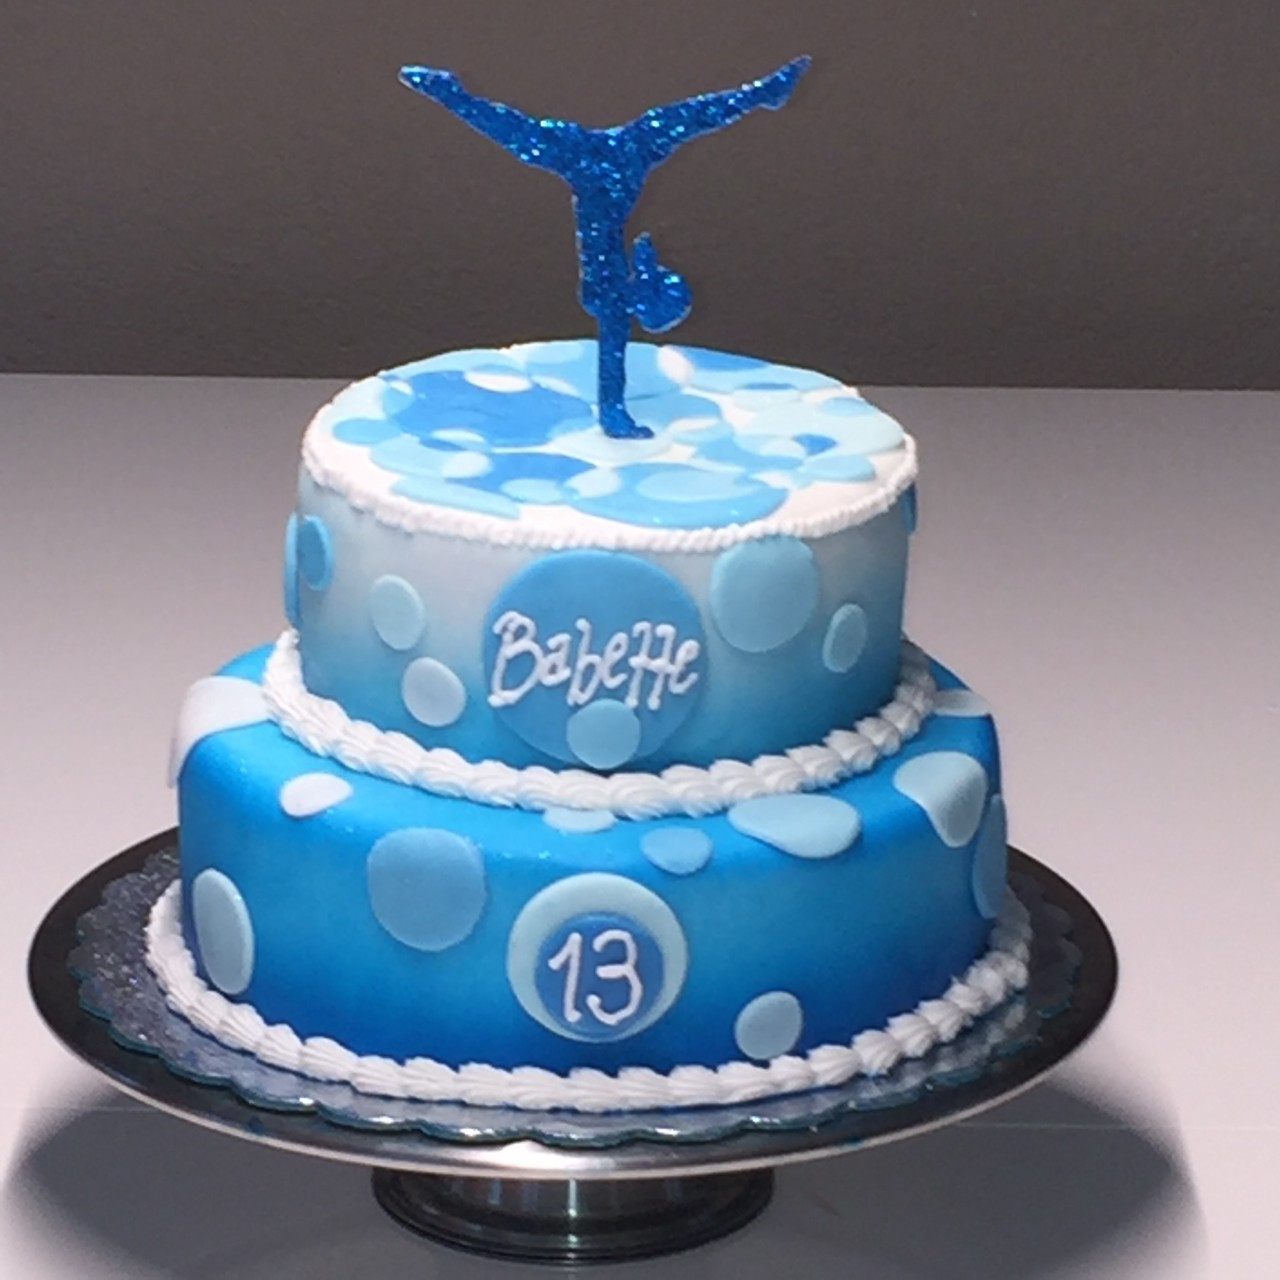 11 Gymnastic Cakes For Girls Diy Photo Gymnastics Cake Gymnastics